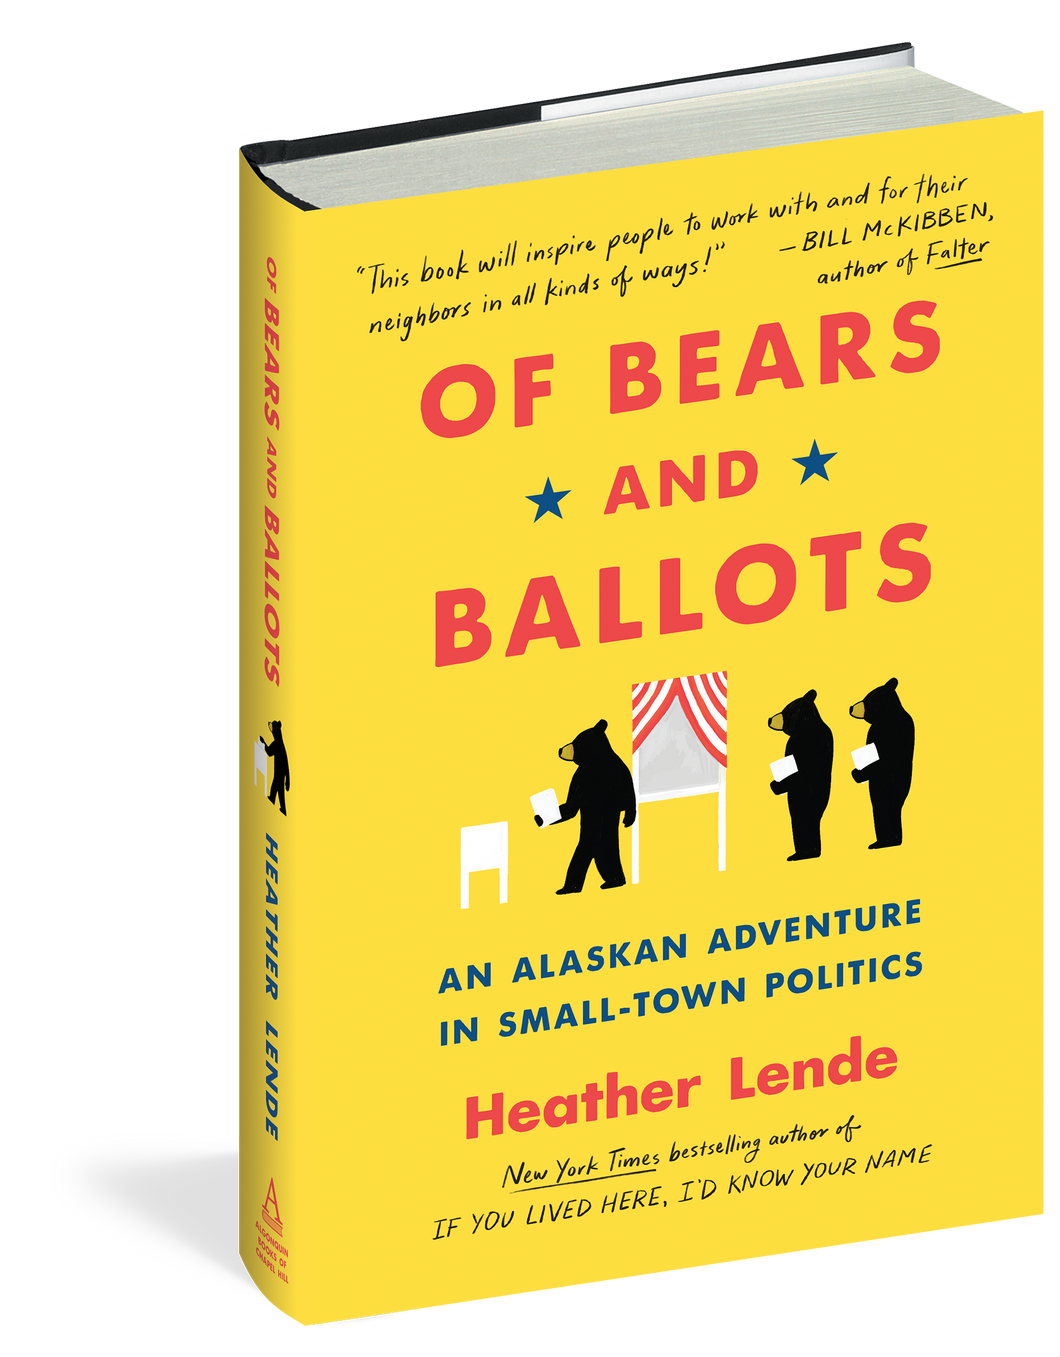 Of Bears & Ballots: An Alaskan Adventure in Small-Town Politics by Heather Lende